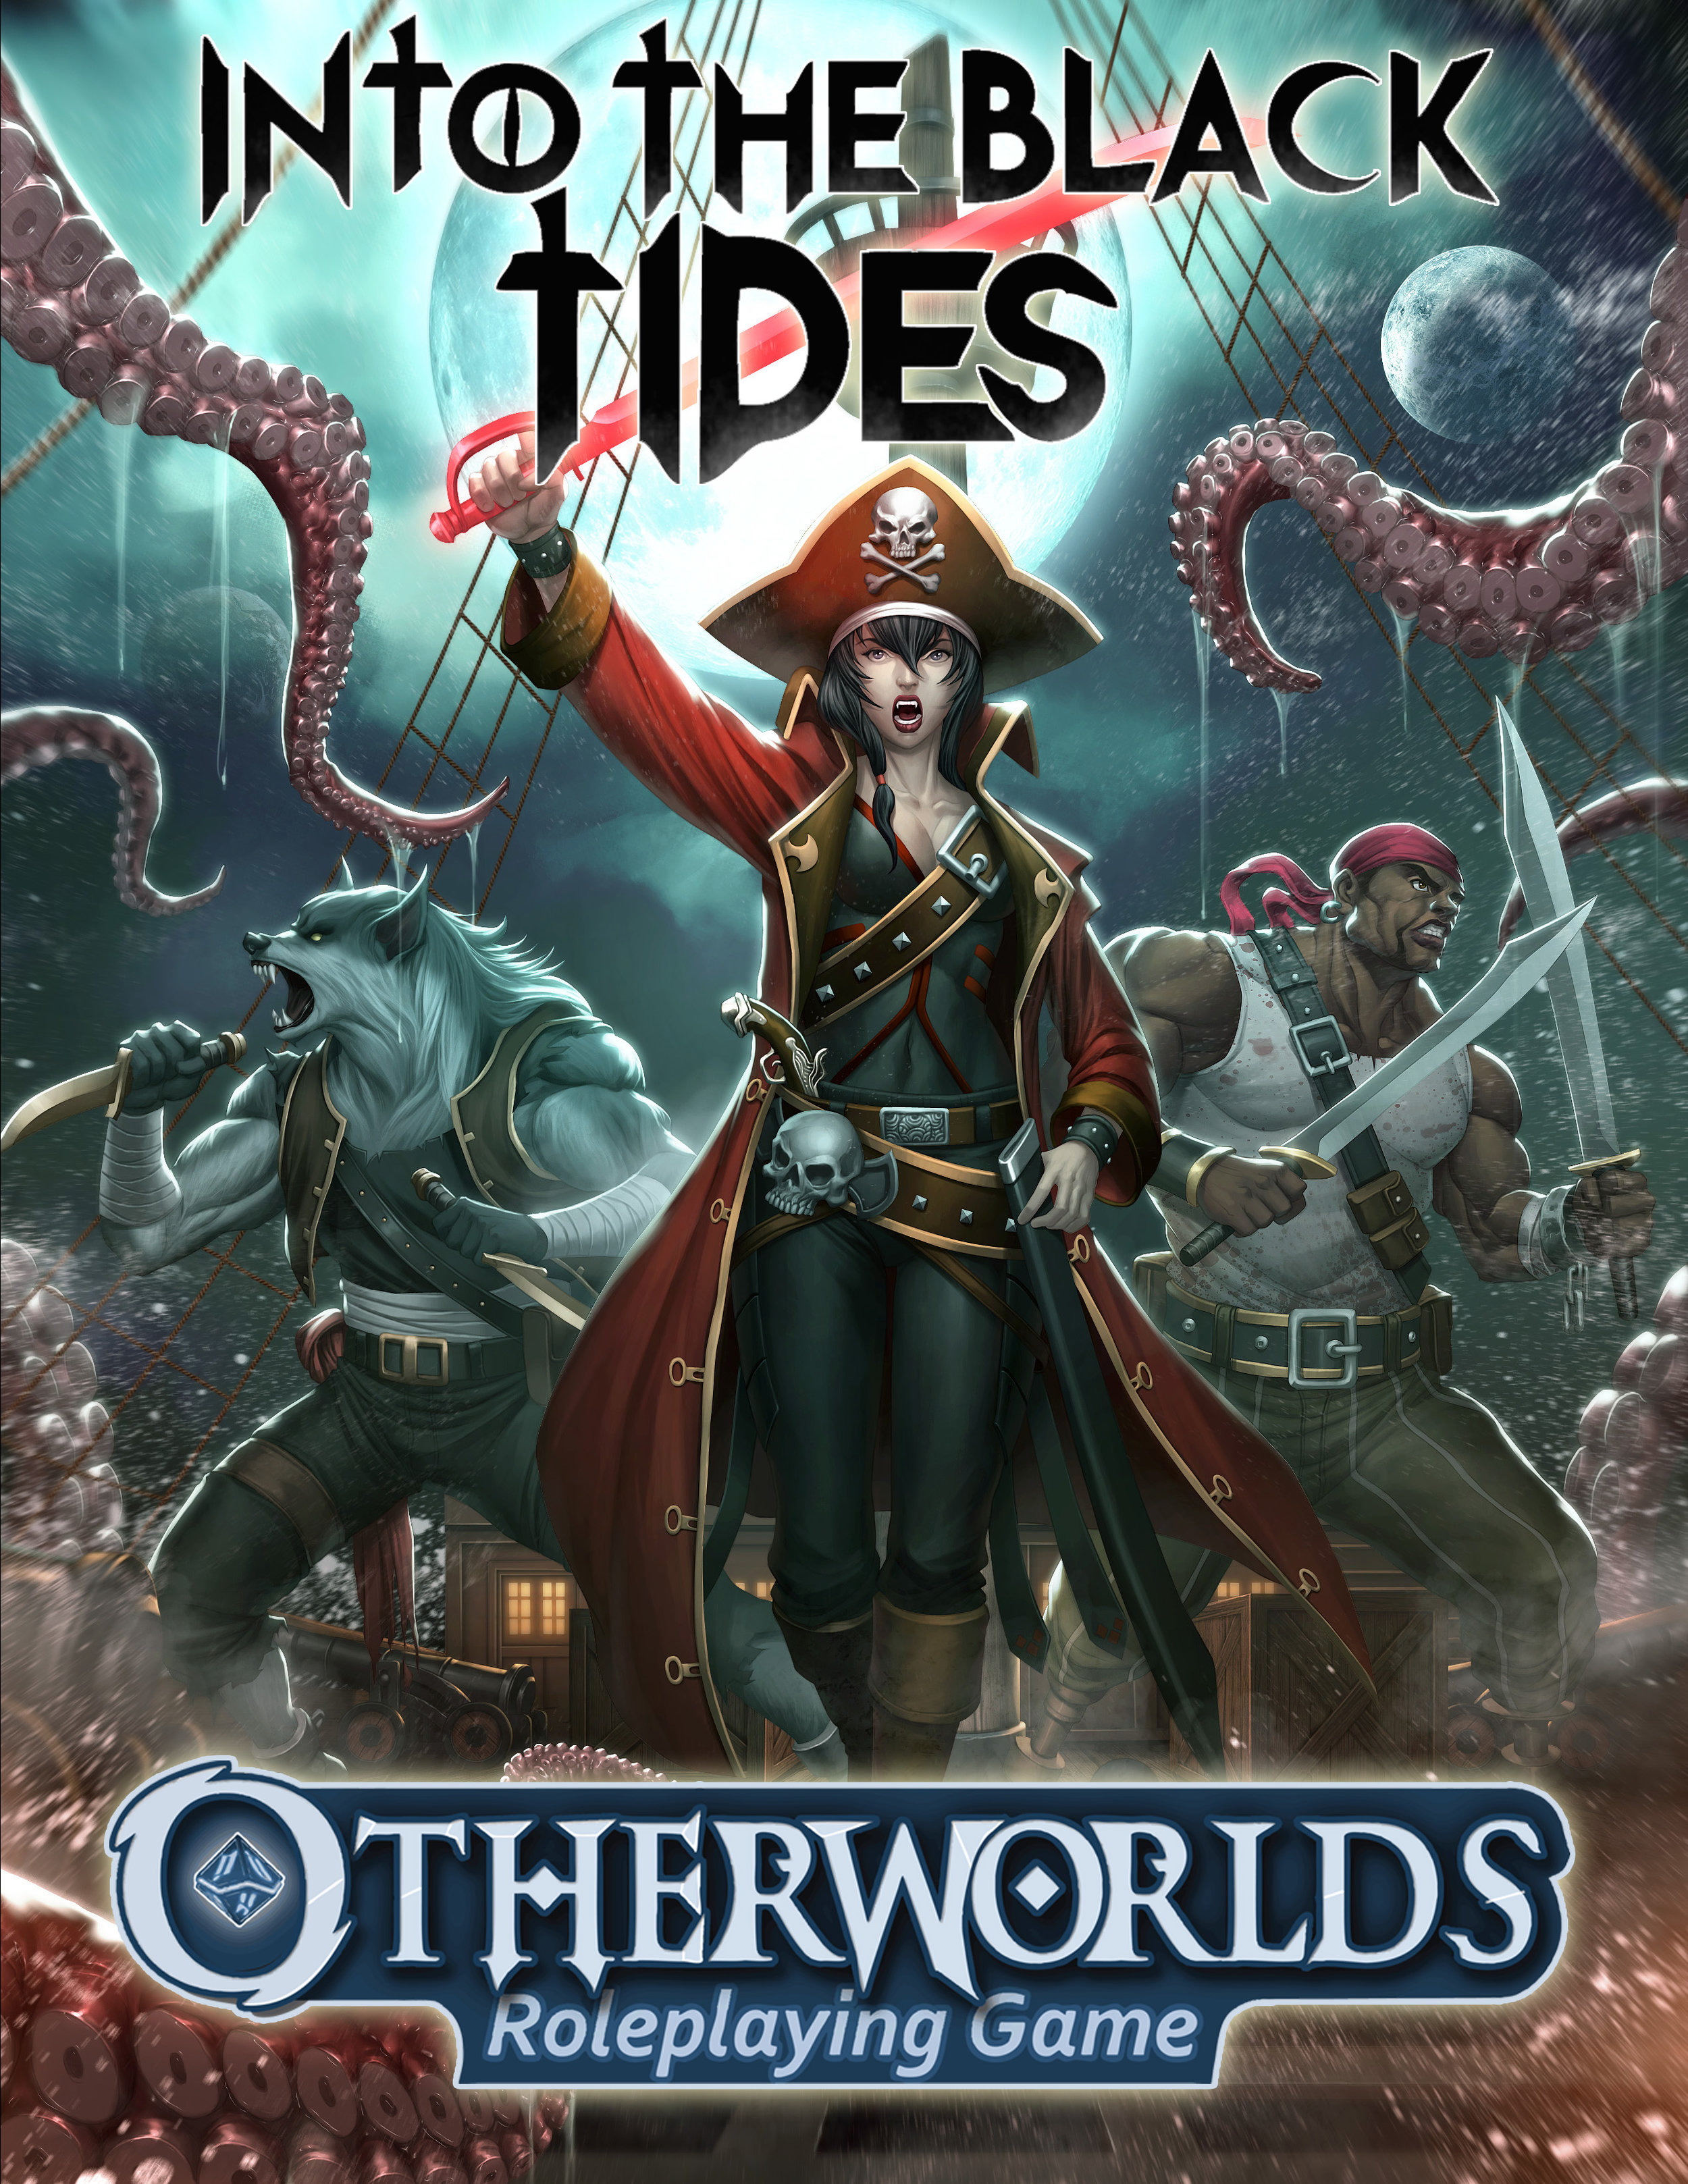 Otherworlds Tabletop RPG - Into the Black Tides Future Fantasy Adventure